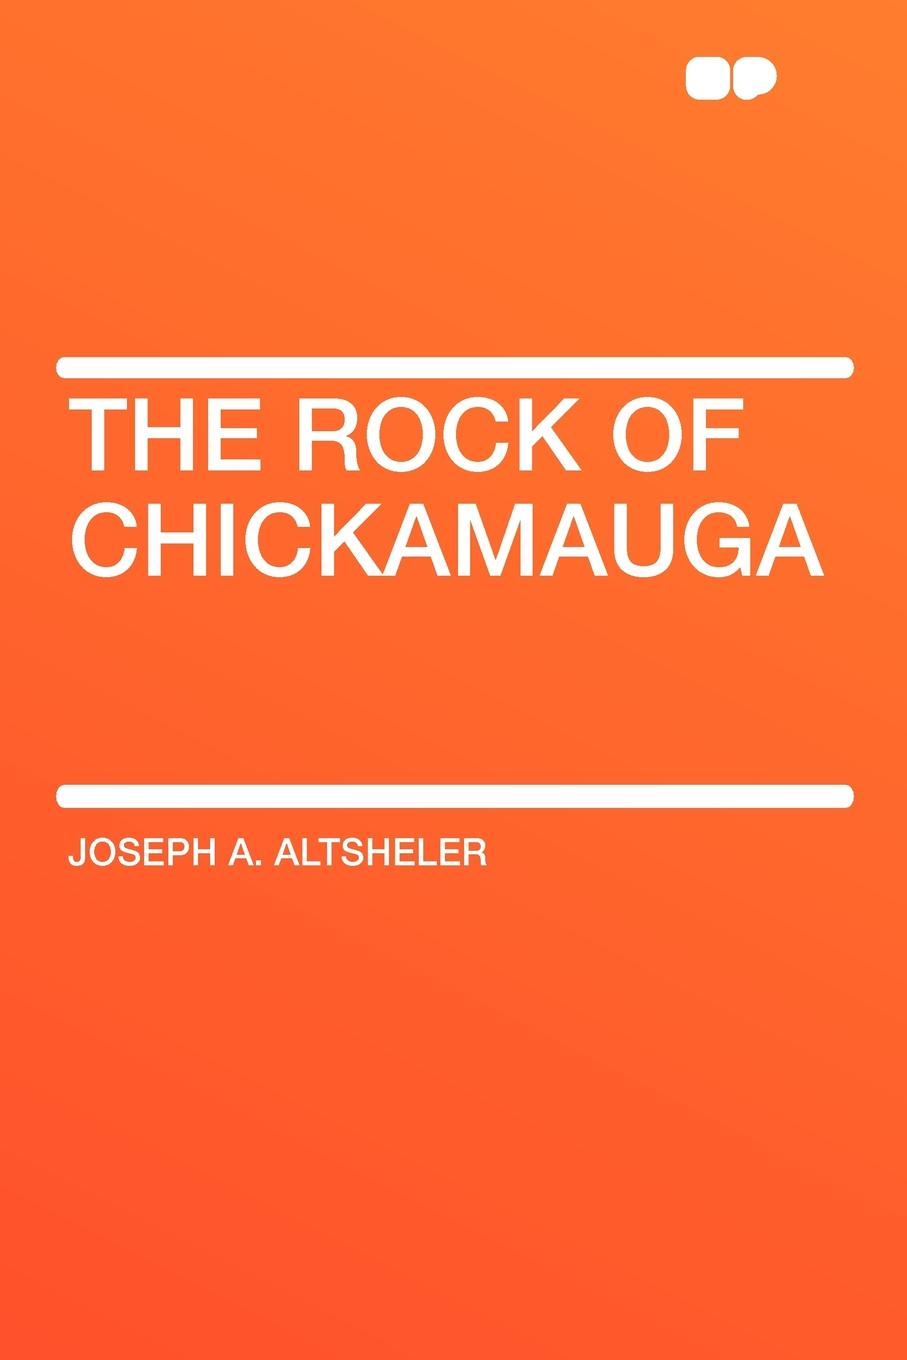 Joseph A. Altsheler The Rock of Chickamauga altsheler joseph alexander the rock of chickamauga a story of the western crisis